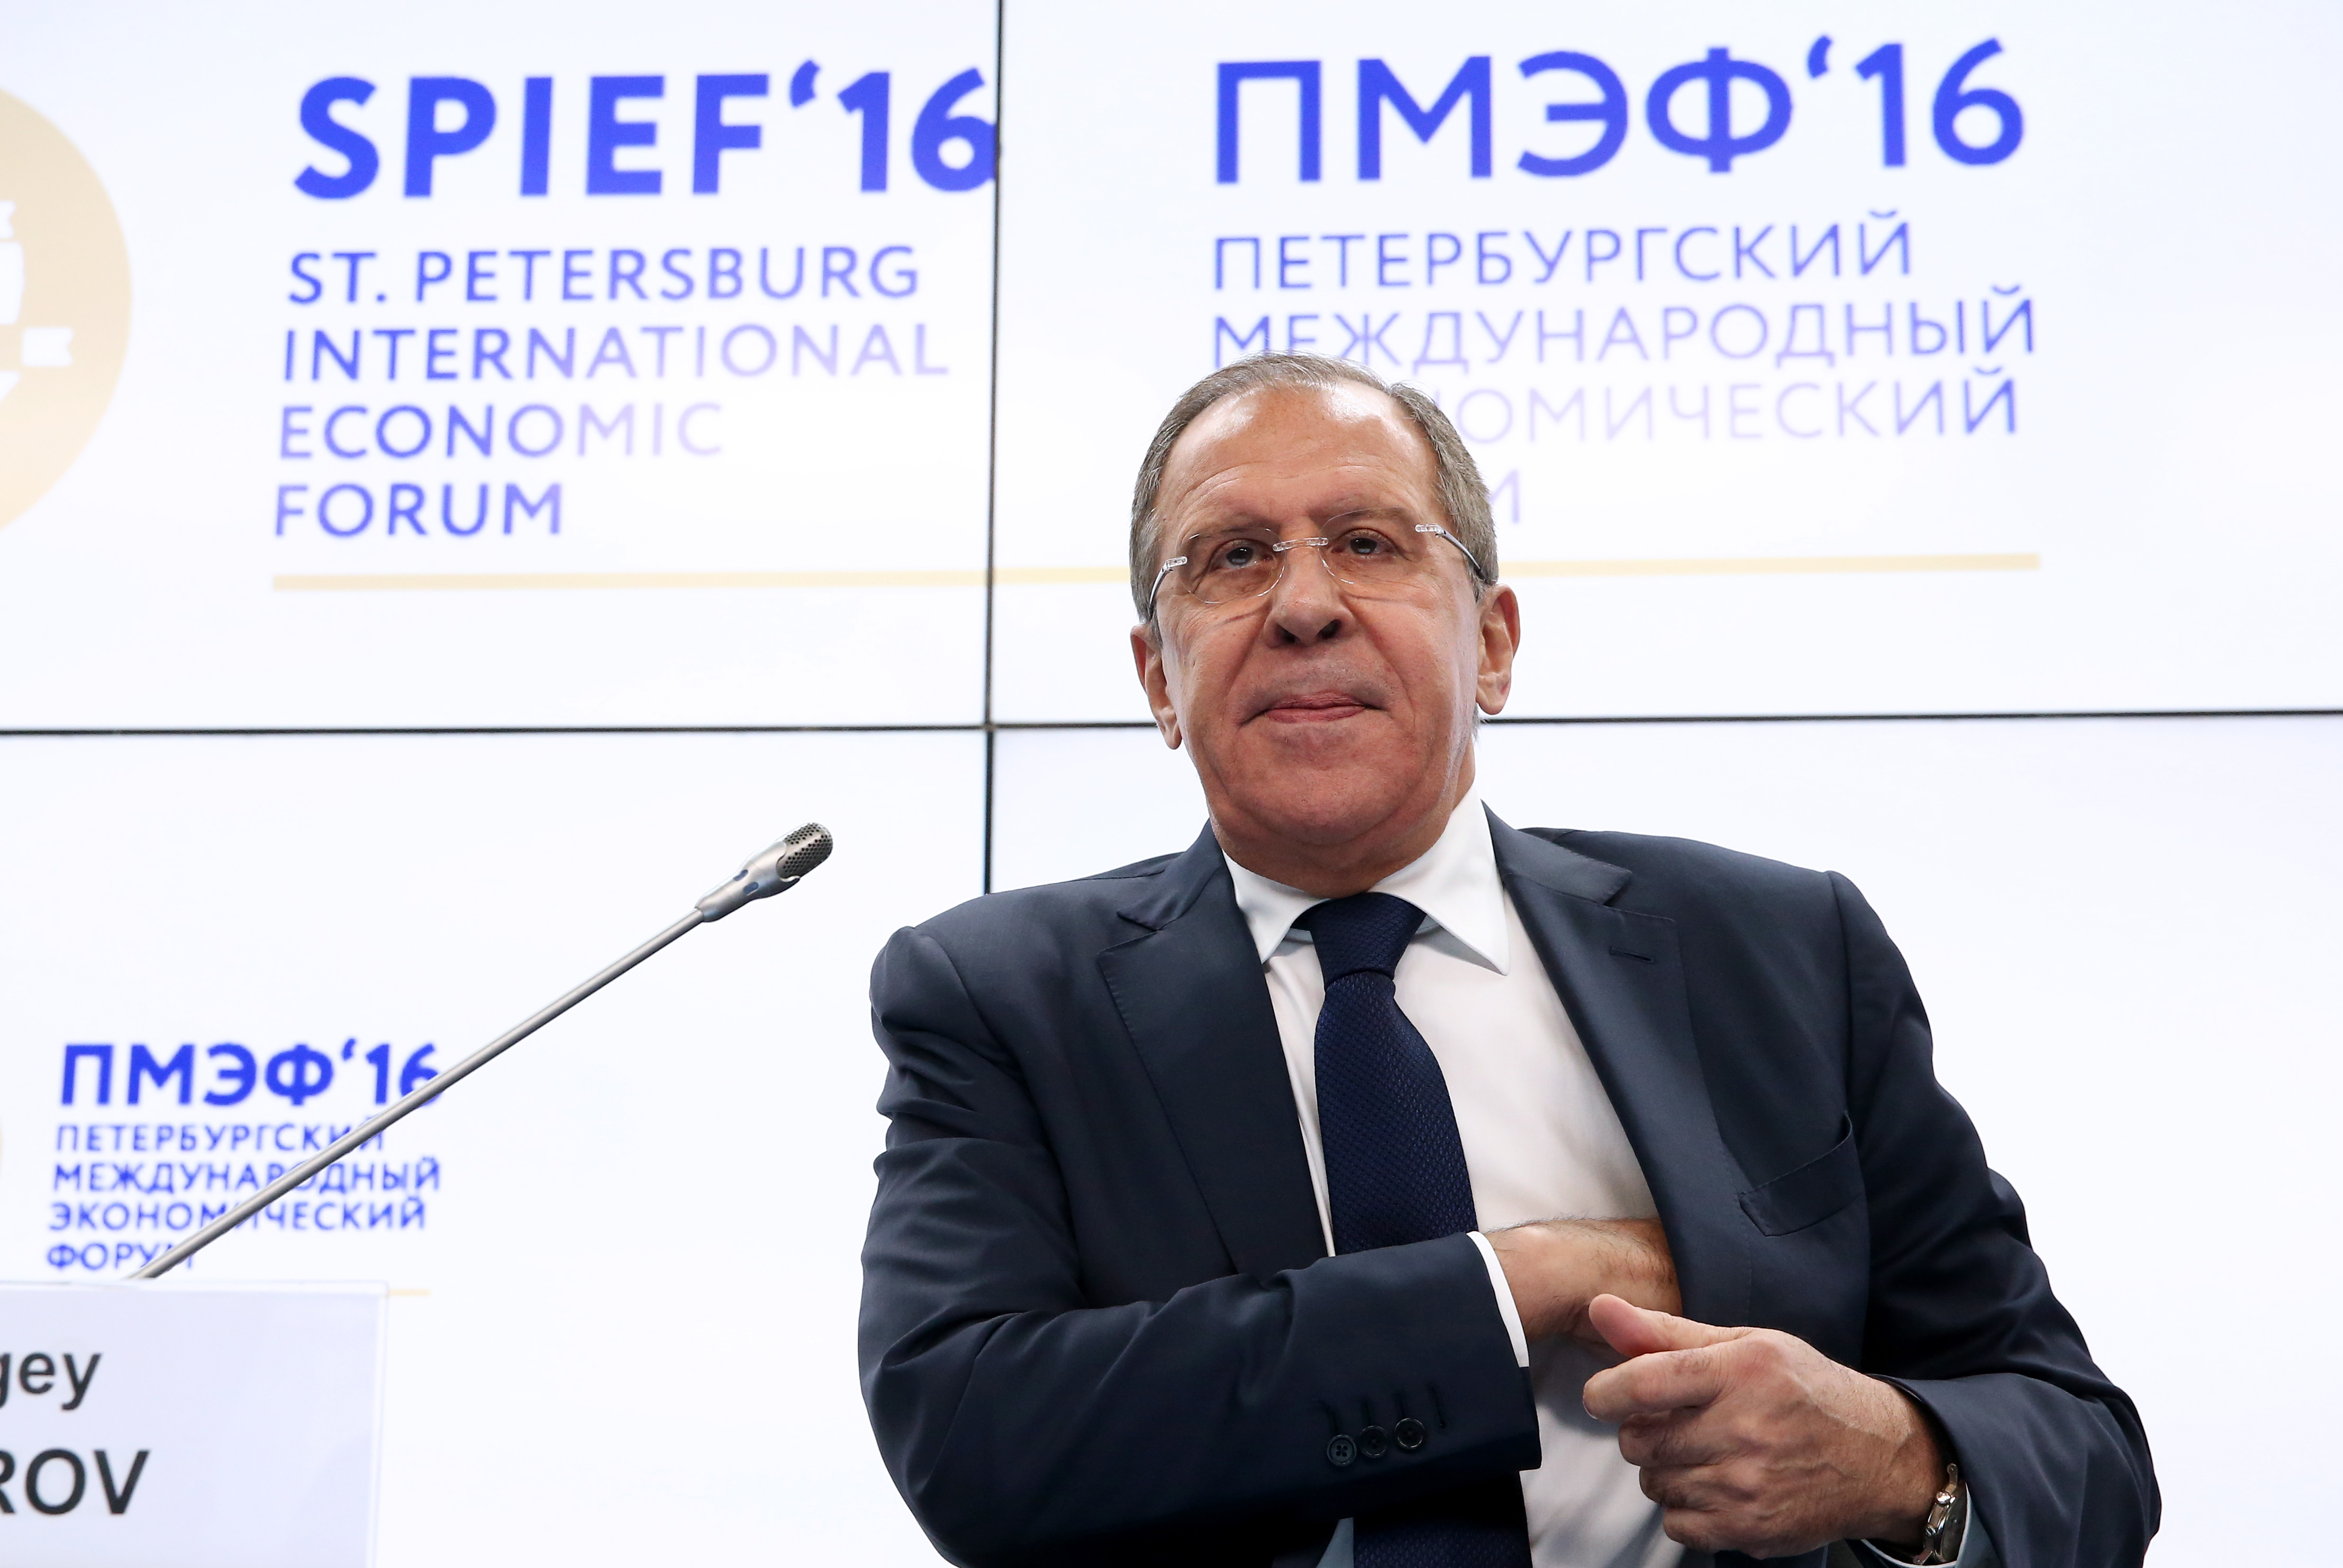 Foreign Minister Sergey Lavrov's remarks and answers to questions at the St Petersburg International Economic Forum